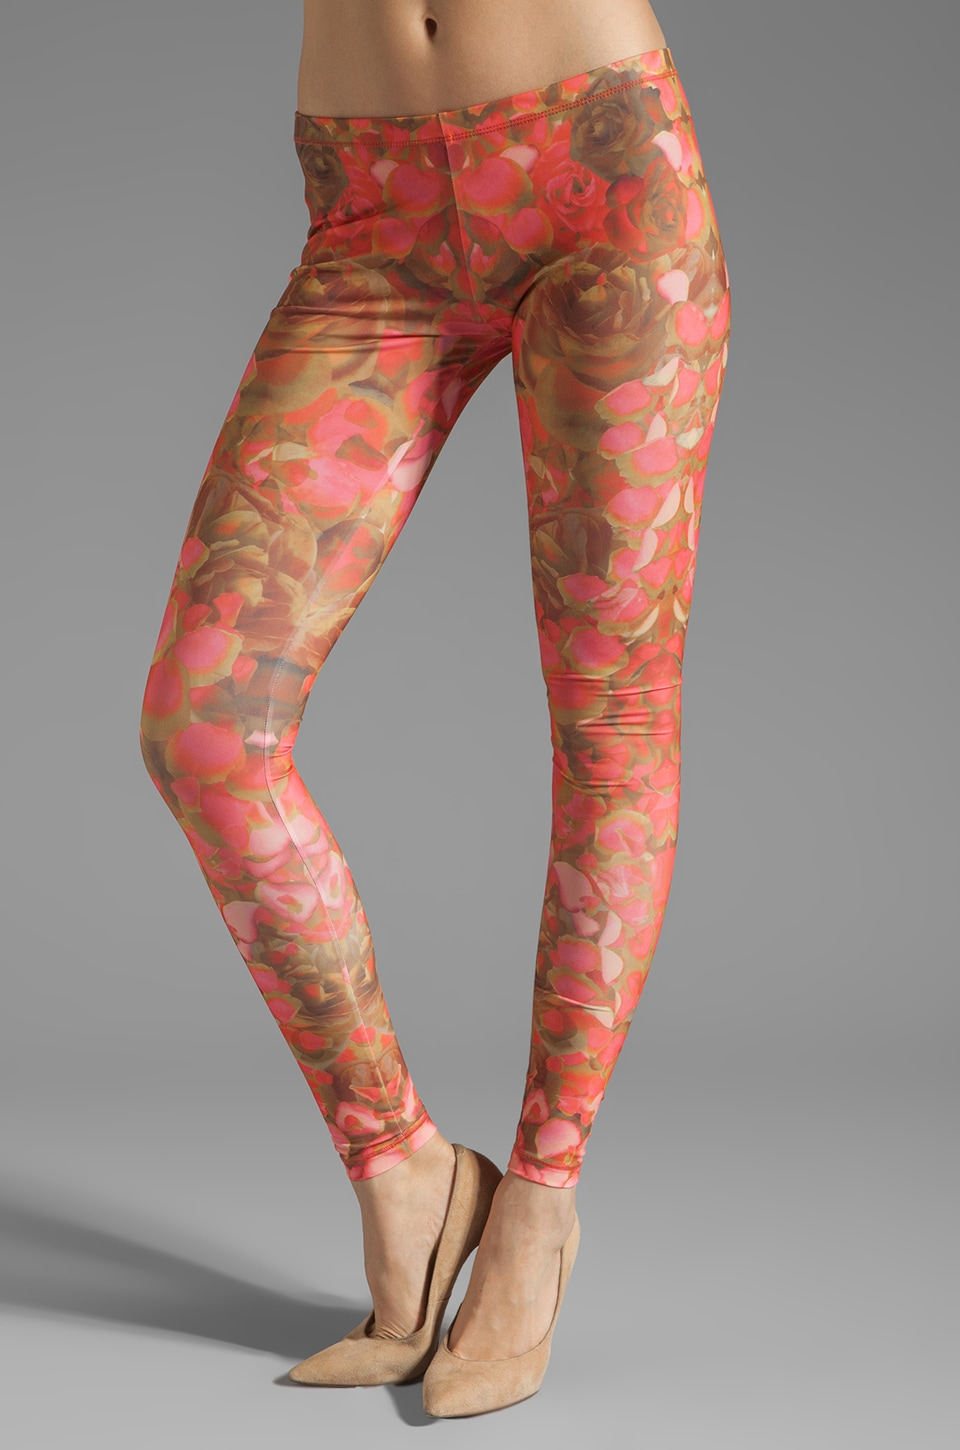 McQ Alexander McQueen Printed Legging in Hot Pink/ Brown